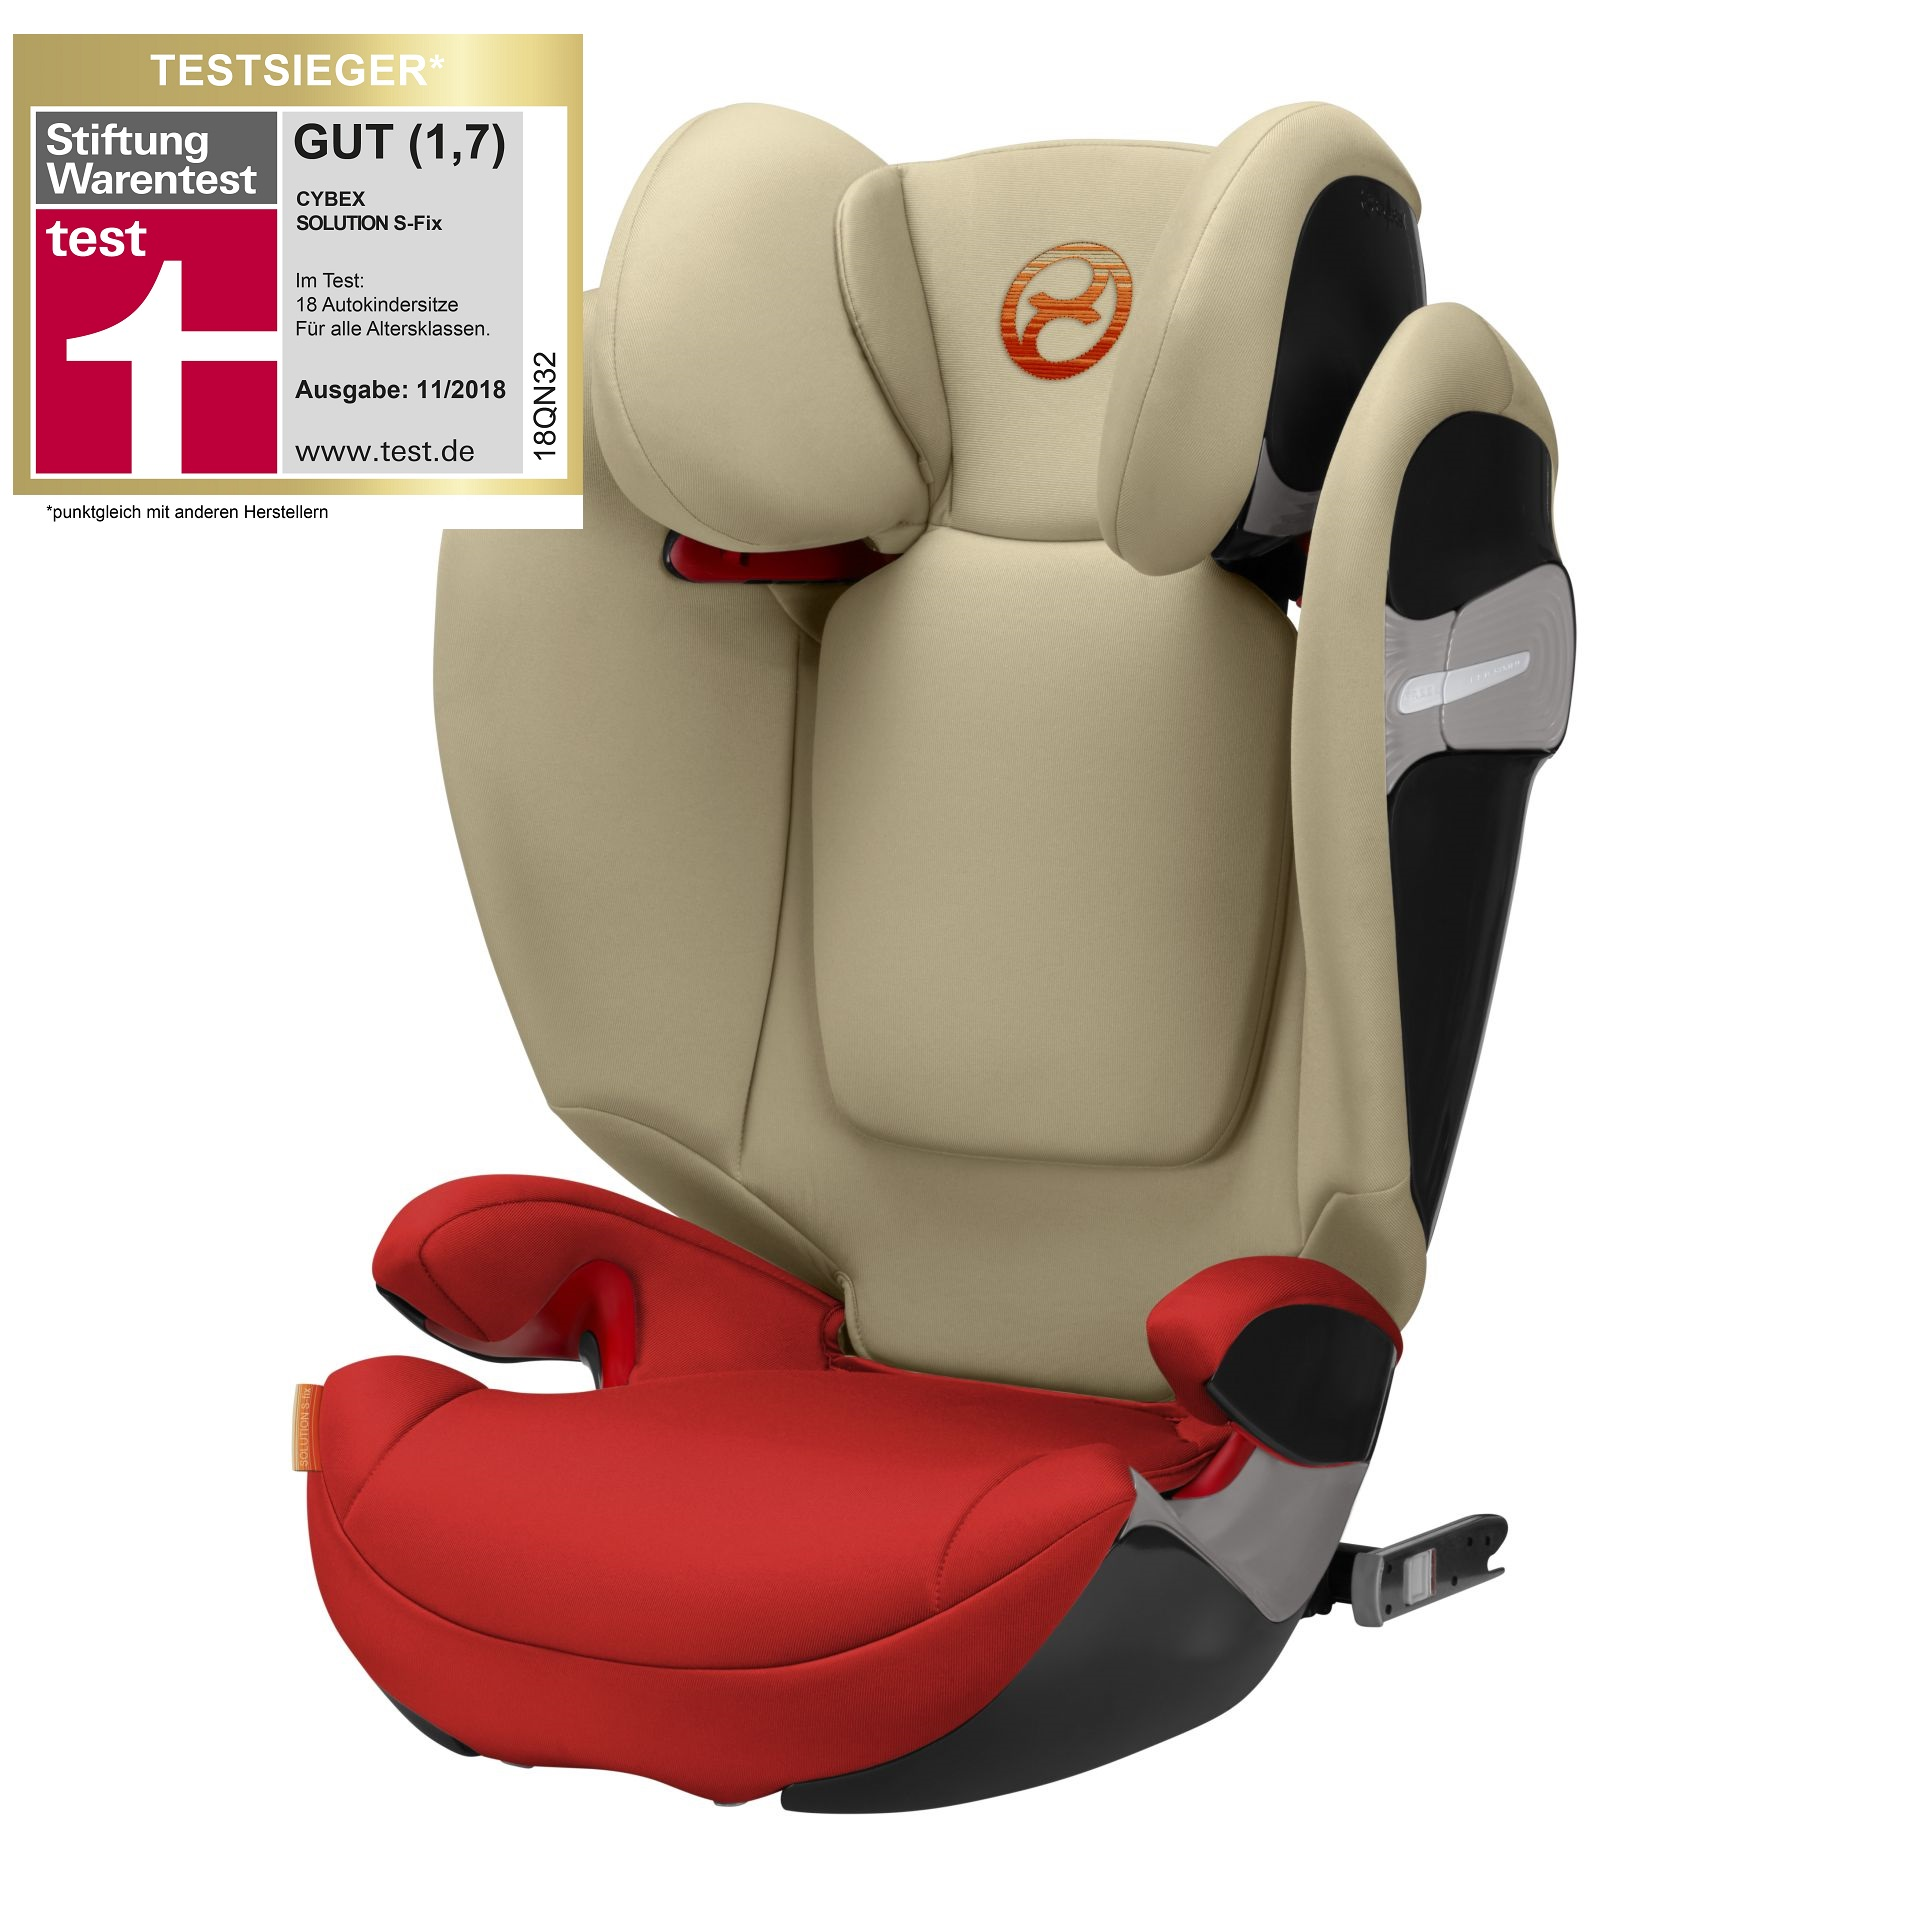 cybex child car seat solution s fix 2018 autumn gold burnt red buy at kidsroom car seats. Black Bedroom Furniture Sets. Home Design Ideas